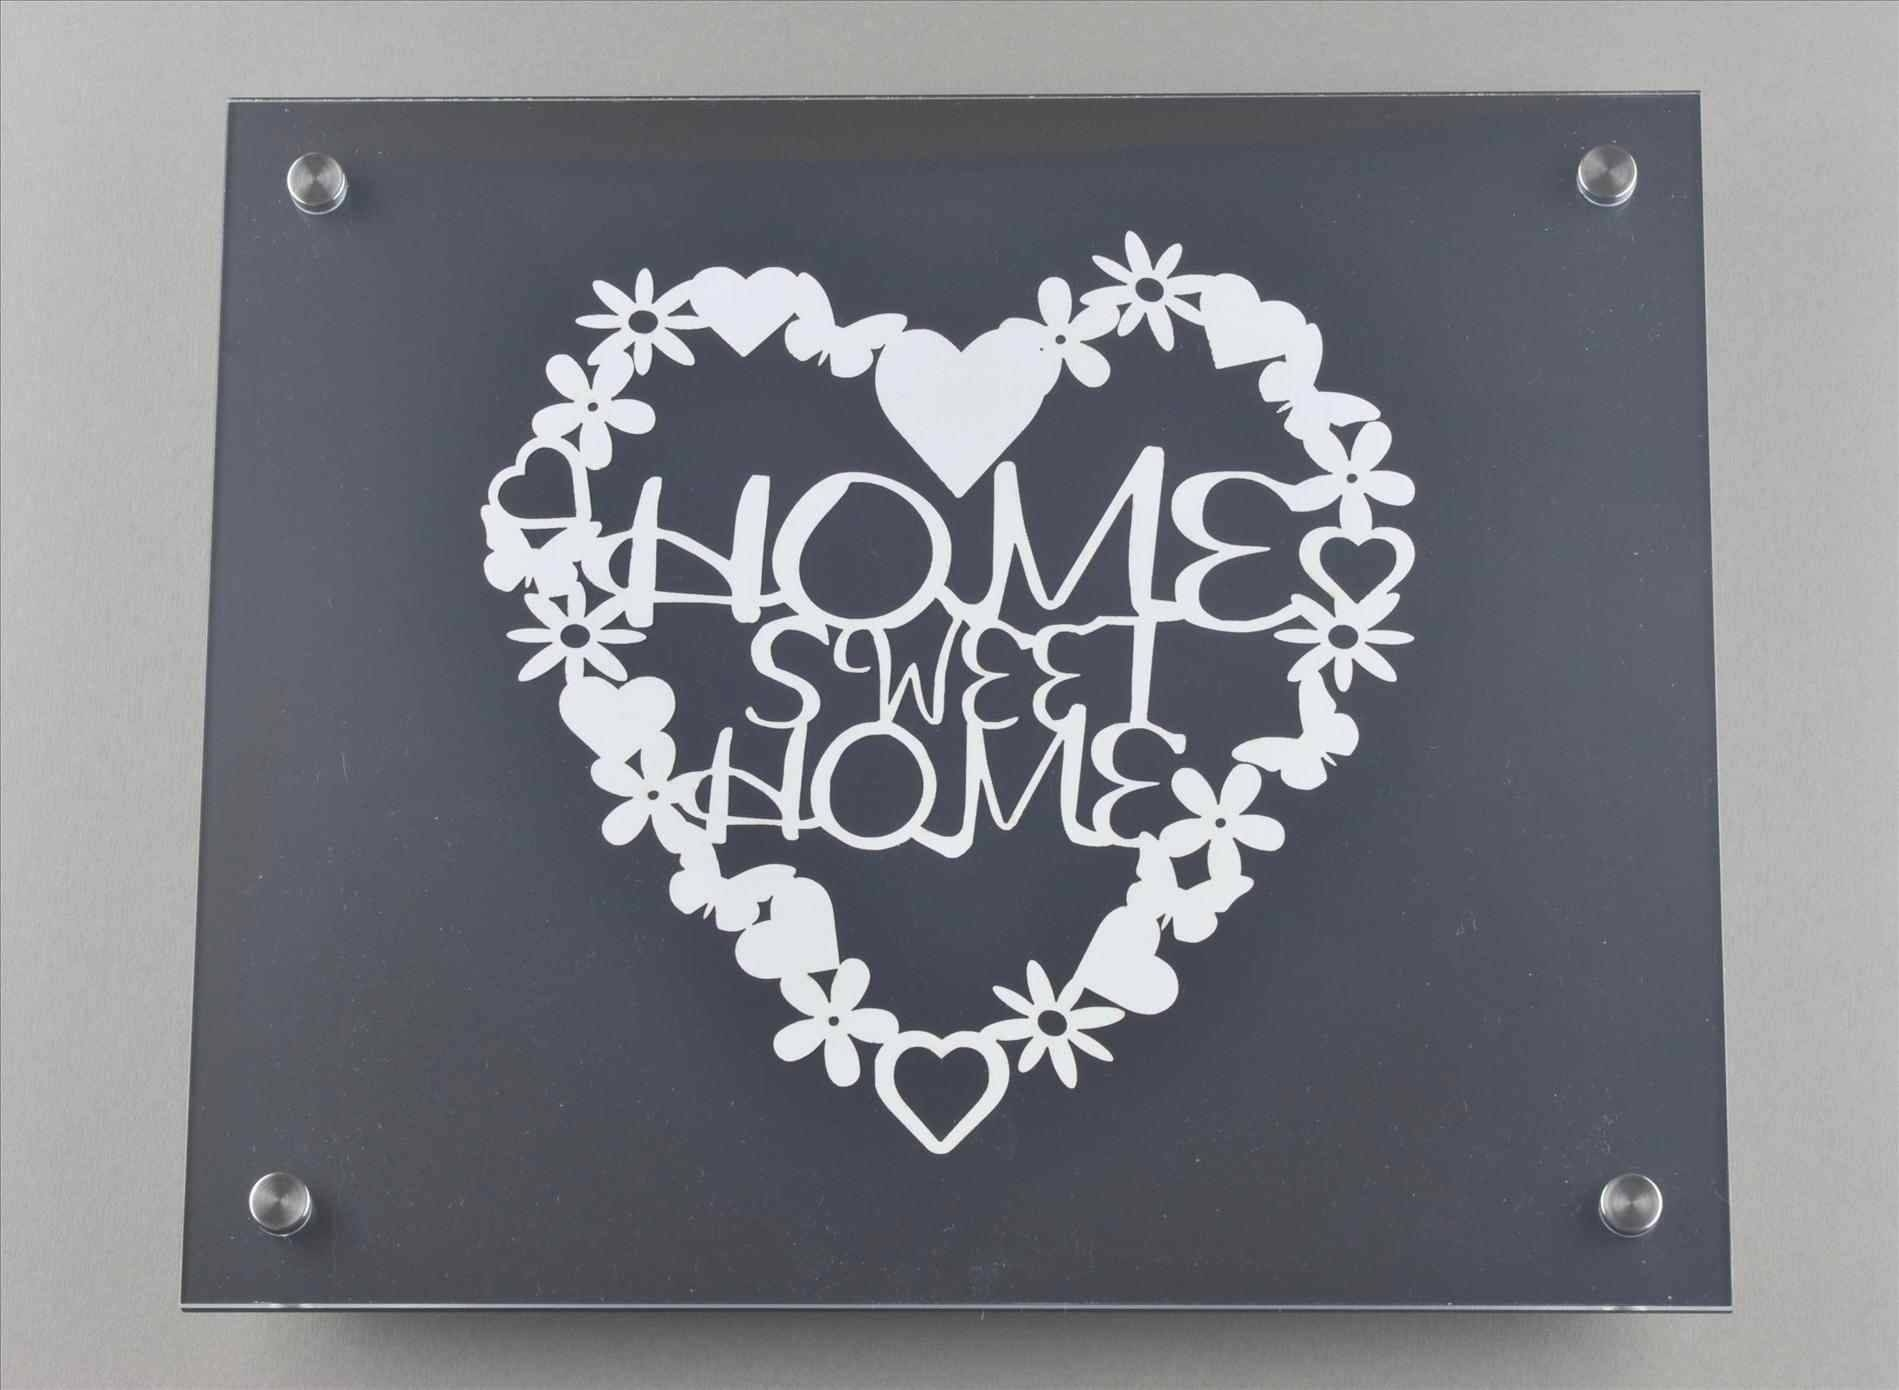 Ideas With Big Cake Decor Home Sweet Home Metal Wall Art Inside Most Popular Home Sweet Home Metal Wall Art (View 5 of 20)